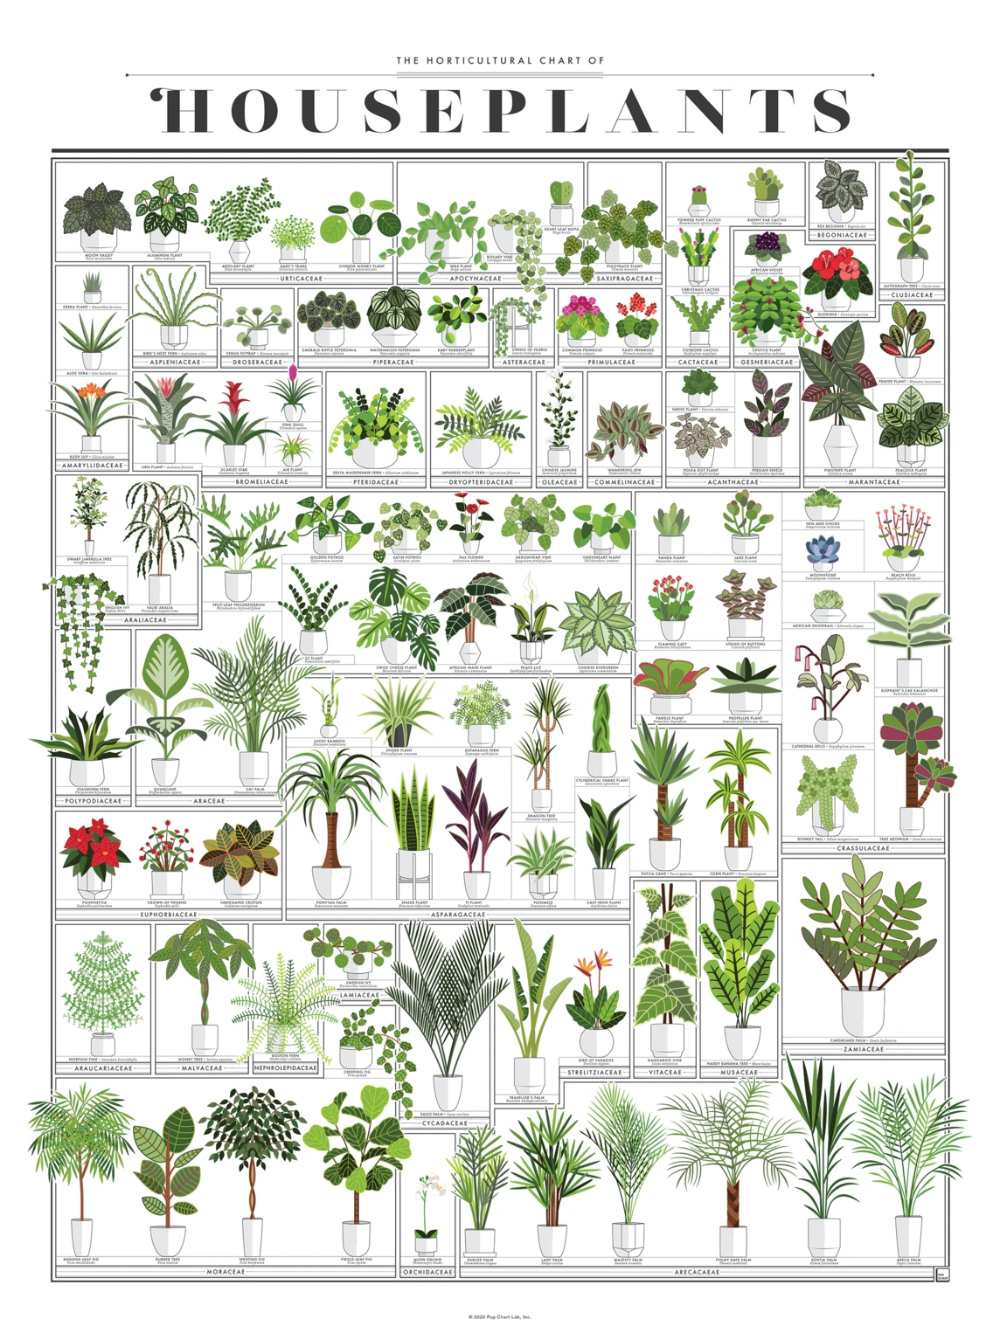 The Horticultural Chart of Houseplants in 2020 | Common ...